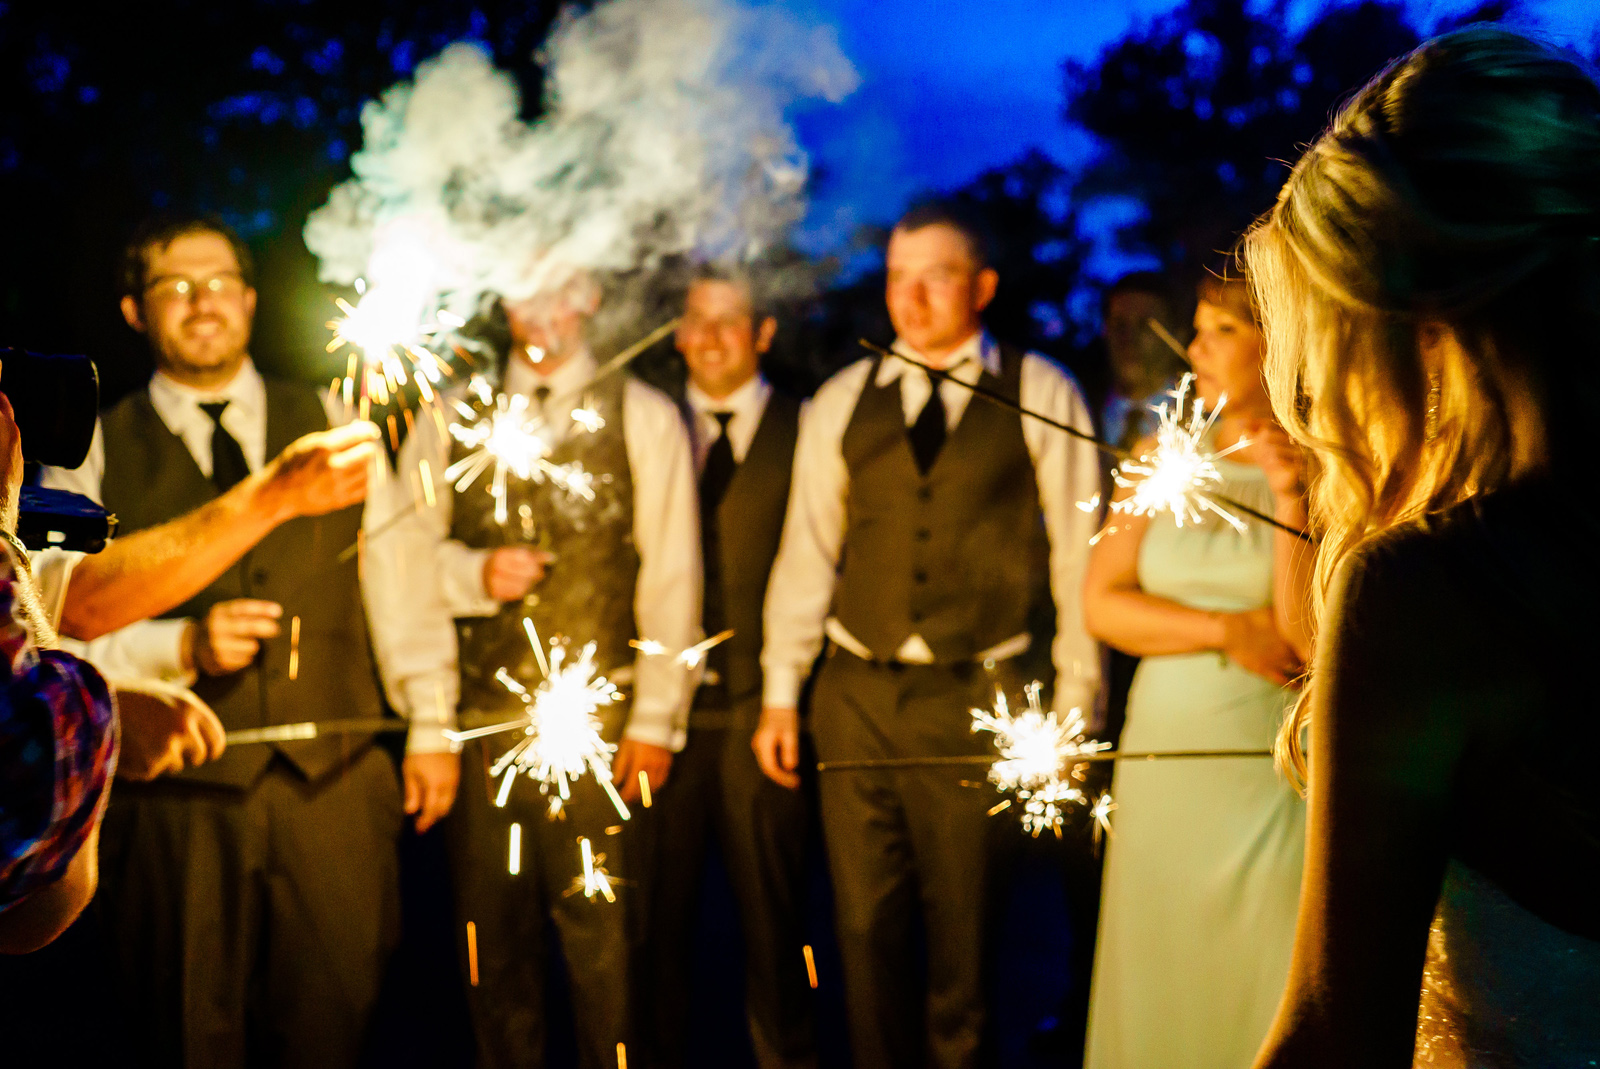 St. Clair Country Club Wedding Reception Photos with St. Louis Wedding Photographers by Oldani Photography 3.jpg